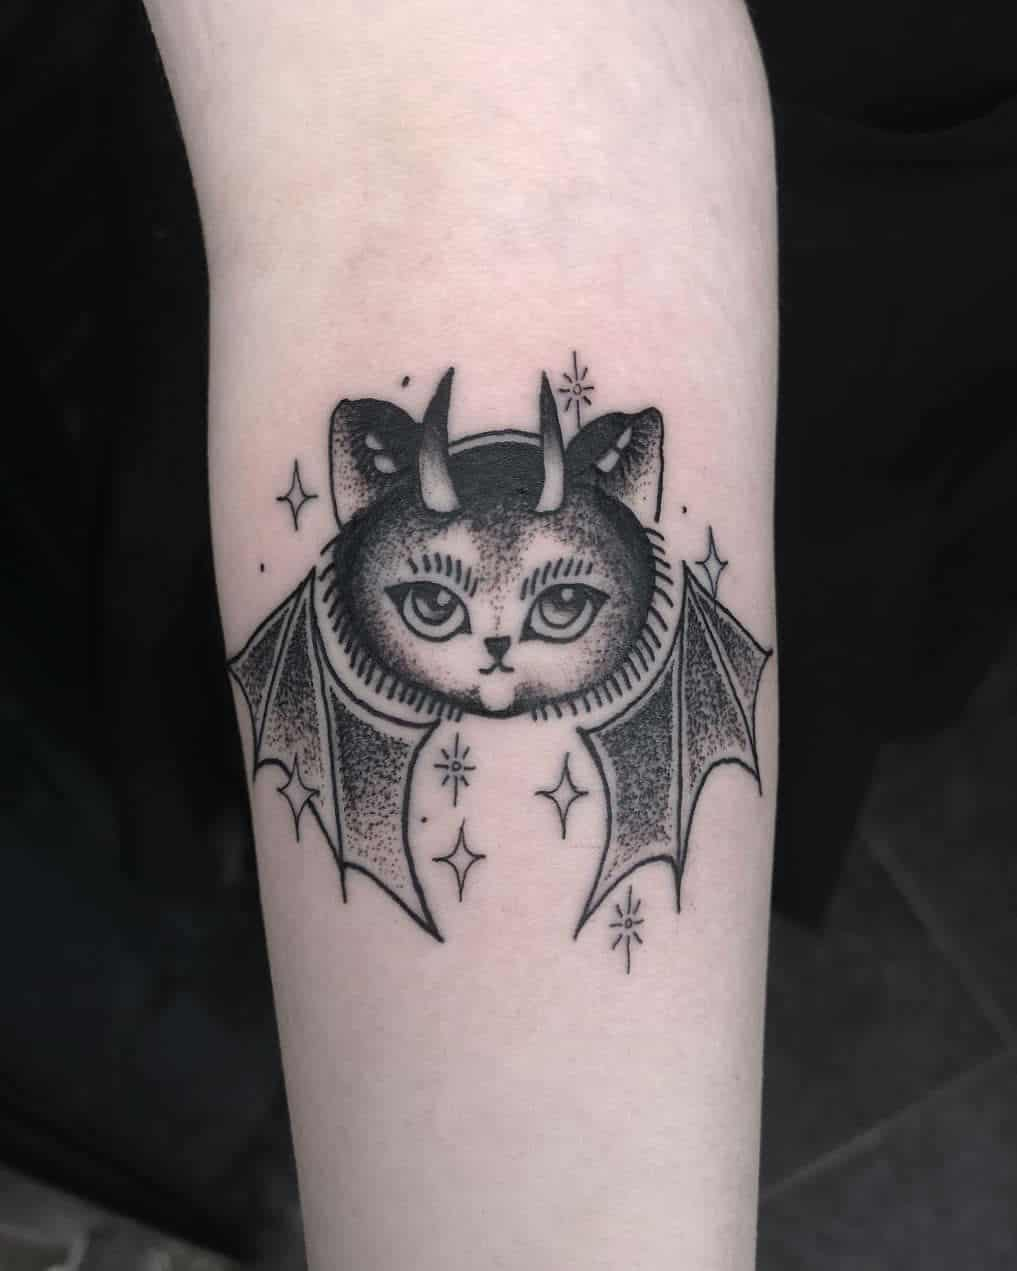 20+ Cool Bat Tattoos and Their Meanings